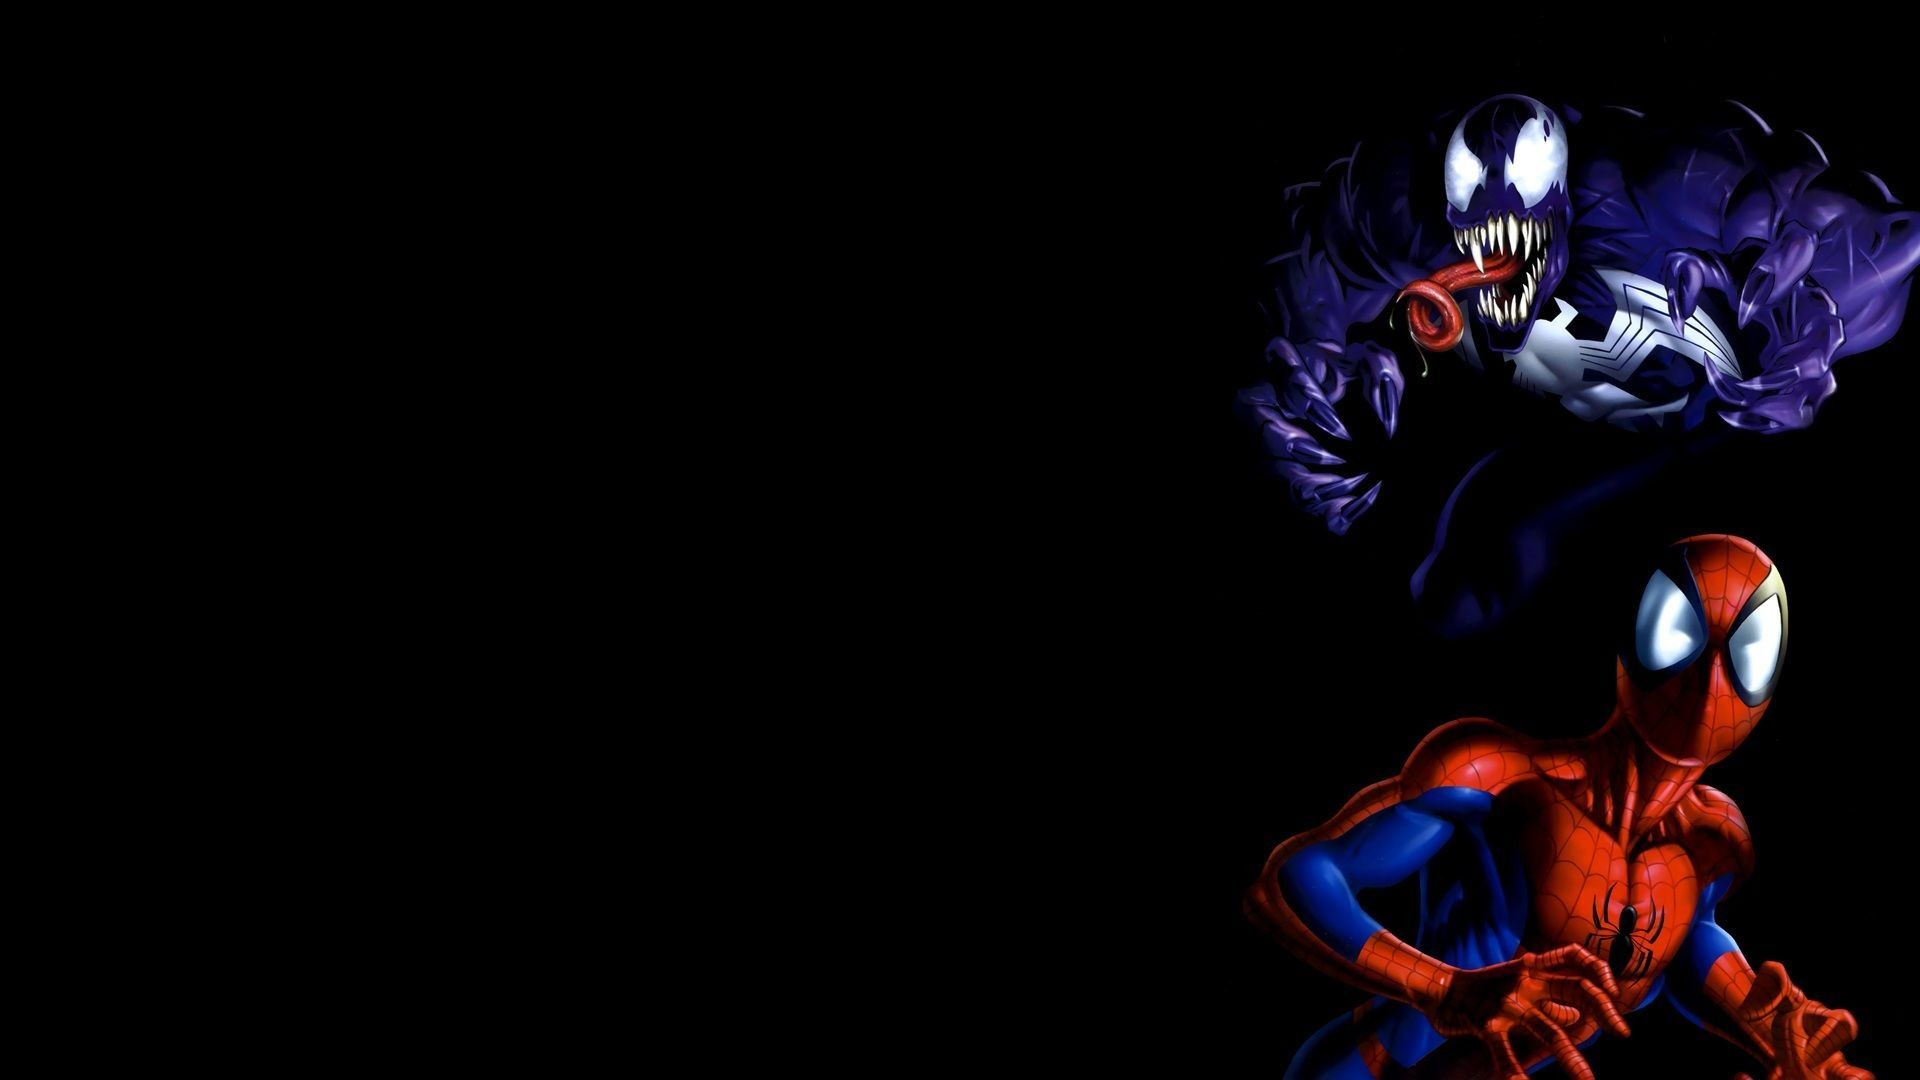 1920x1080 Venom Vs Carnage Wallpaper Images with HD Wallpaper Resolution  px  81.34 KB Movies Thunderbolts Anti